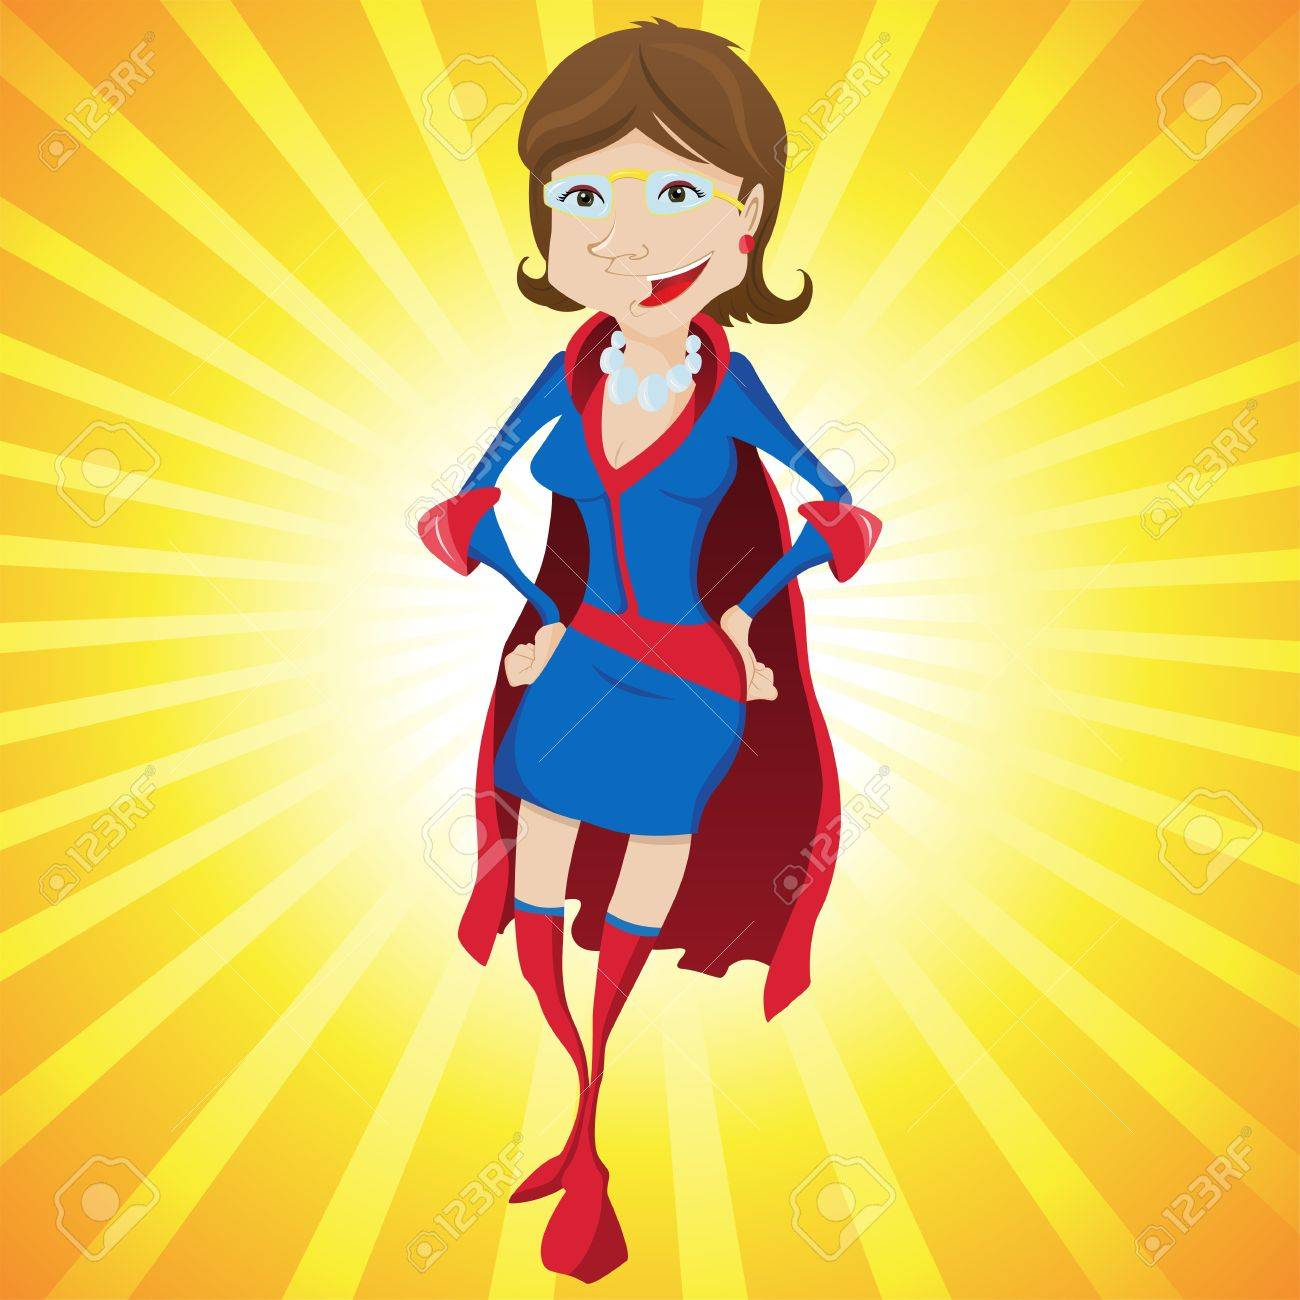 Super Woman Mother Cartoon with Yellow Background. Editable Illustration Stock Vector - 6957259